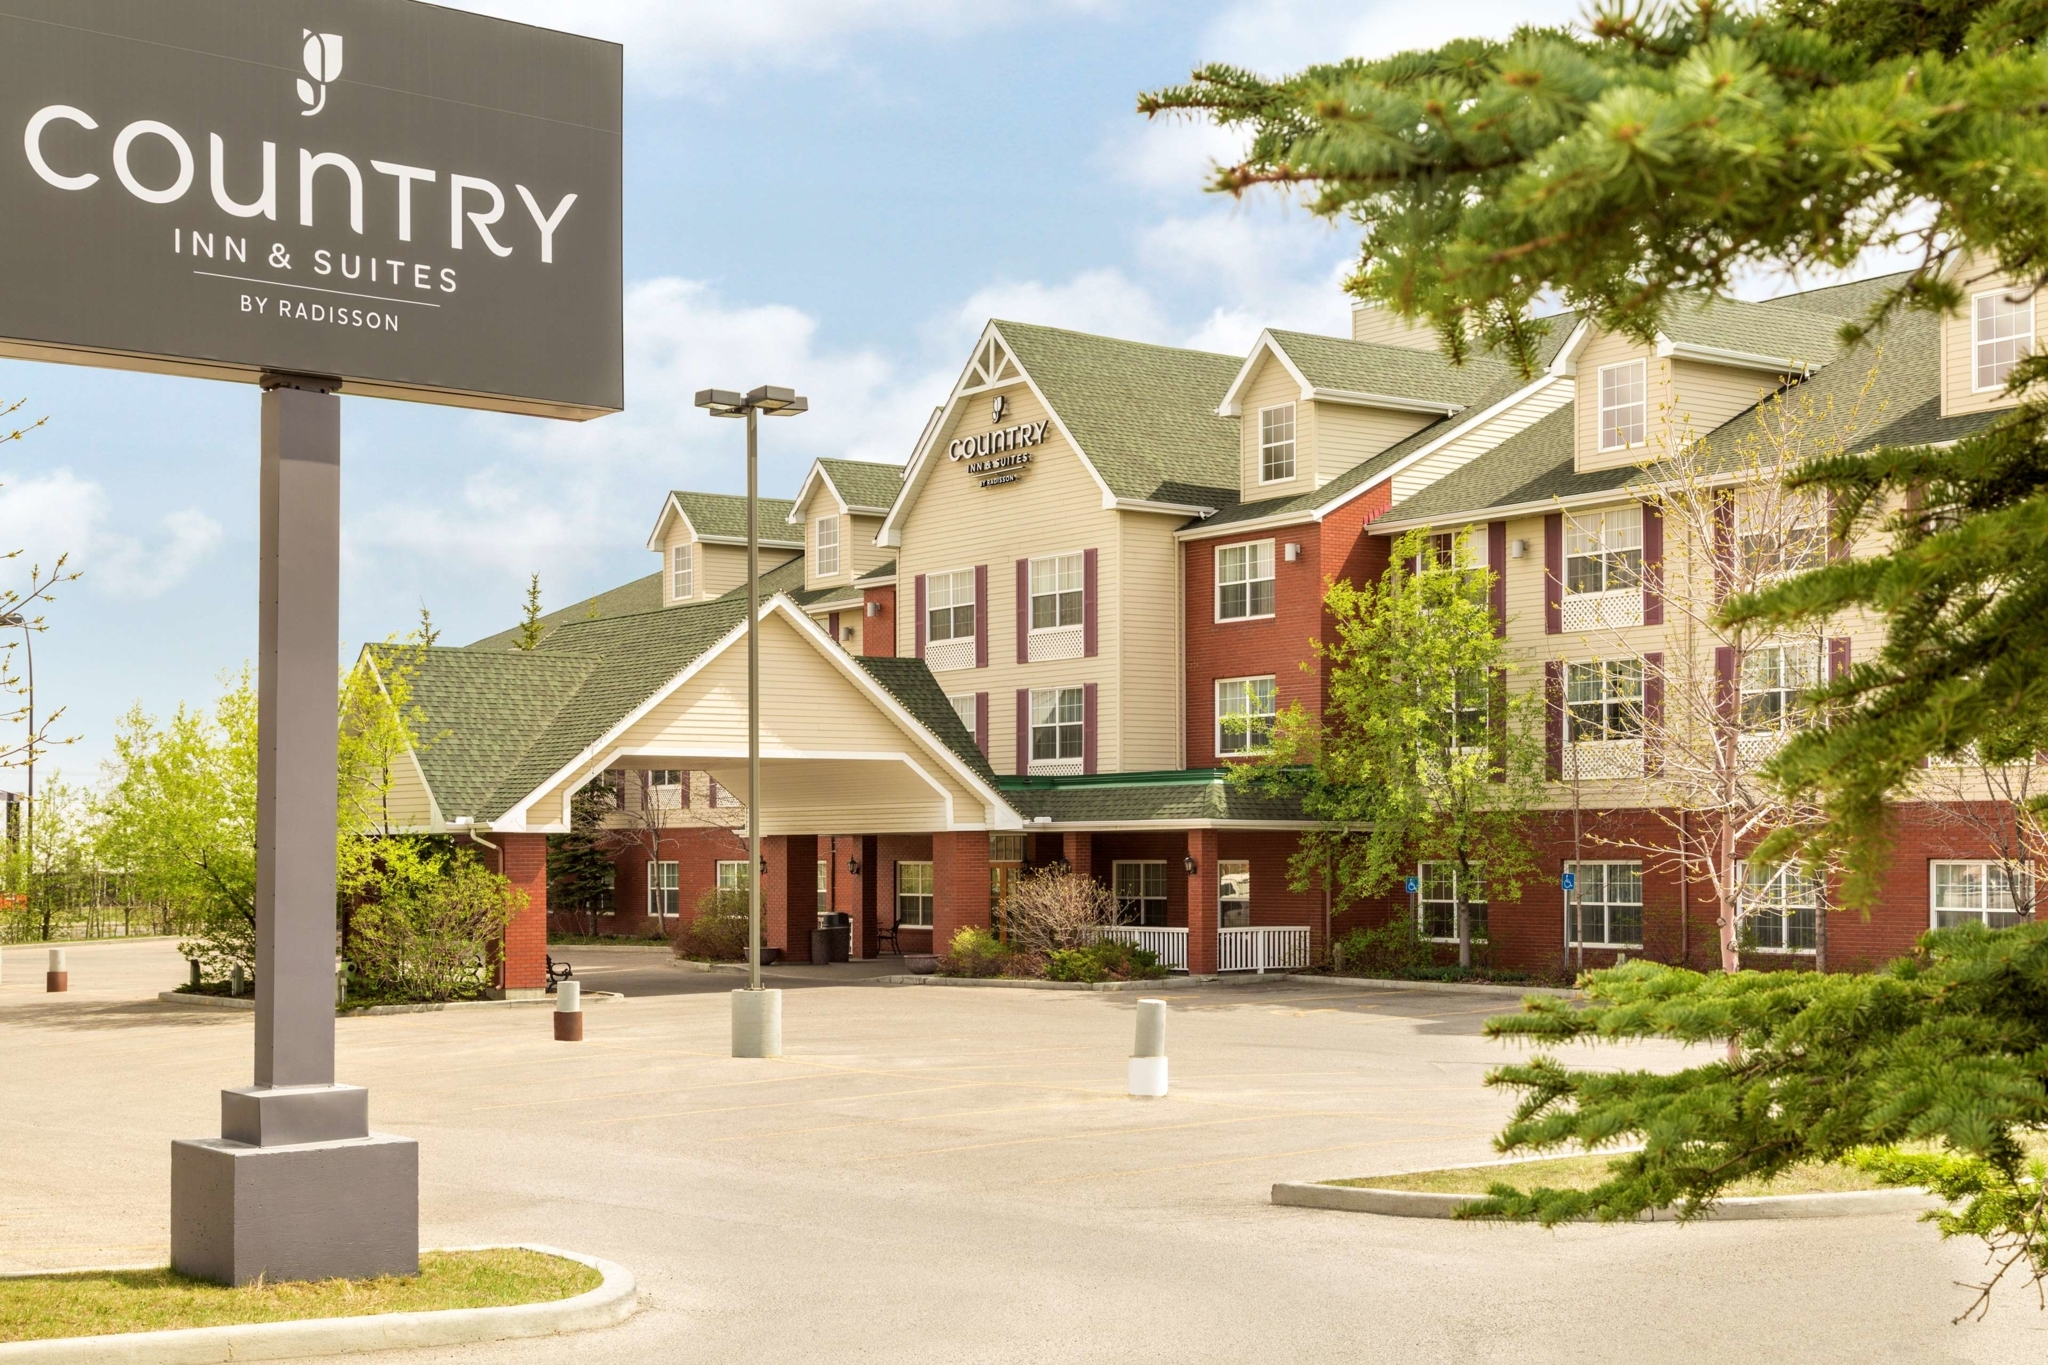 Country Inn & Suites by Radisson, Calgary-Airport, AB - Hotels